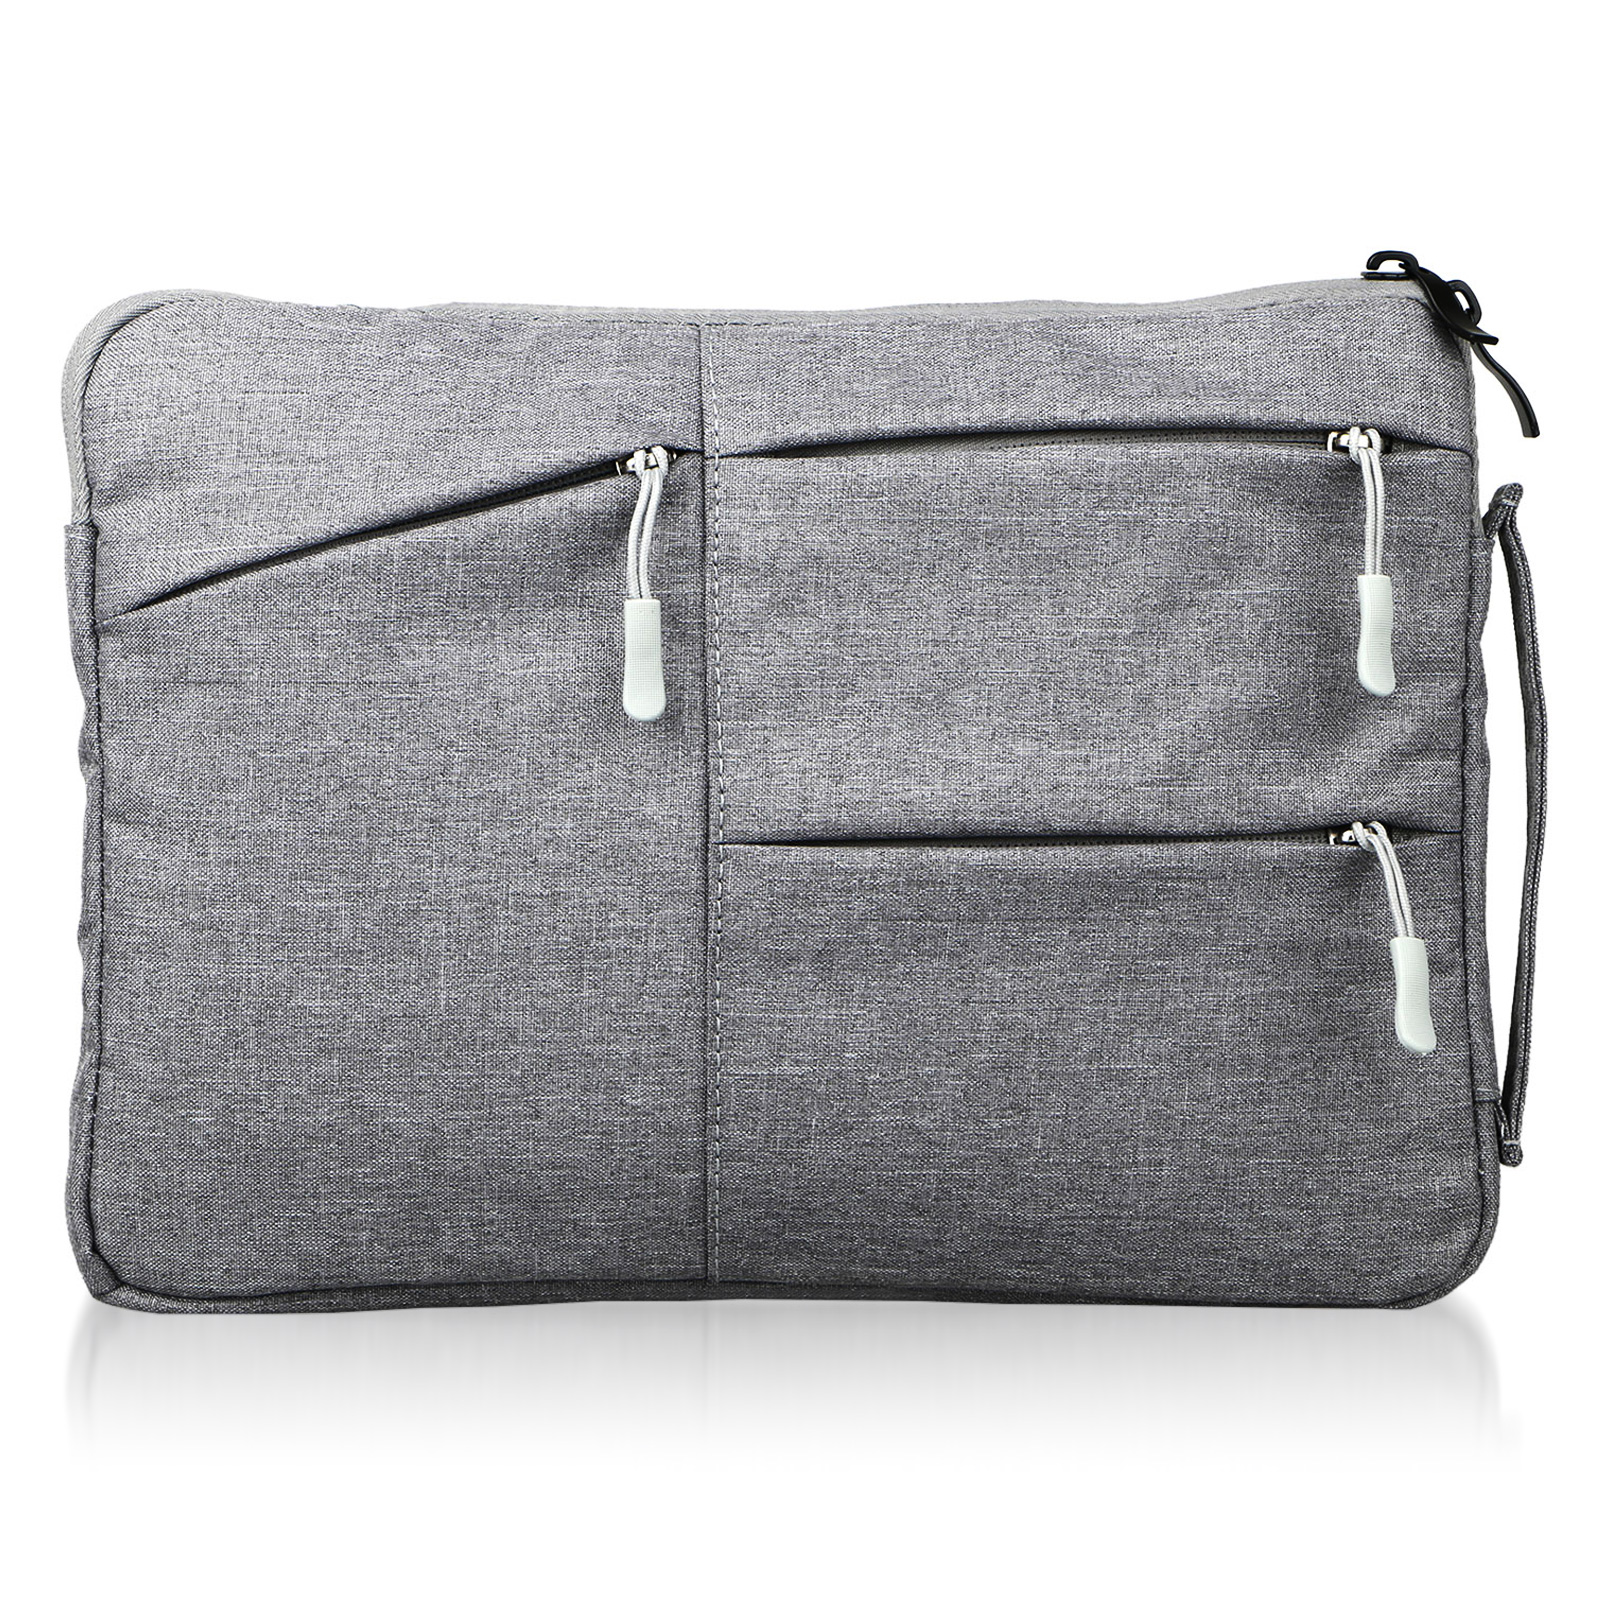 "TSV Waterproof Laptop Sleeve Case Carry Cover Bag Pouch for 11"" 13"" 15"" NoteBook"